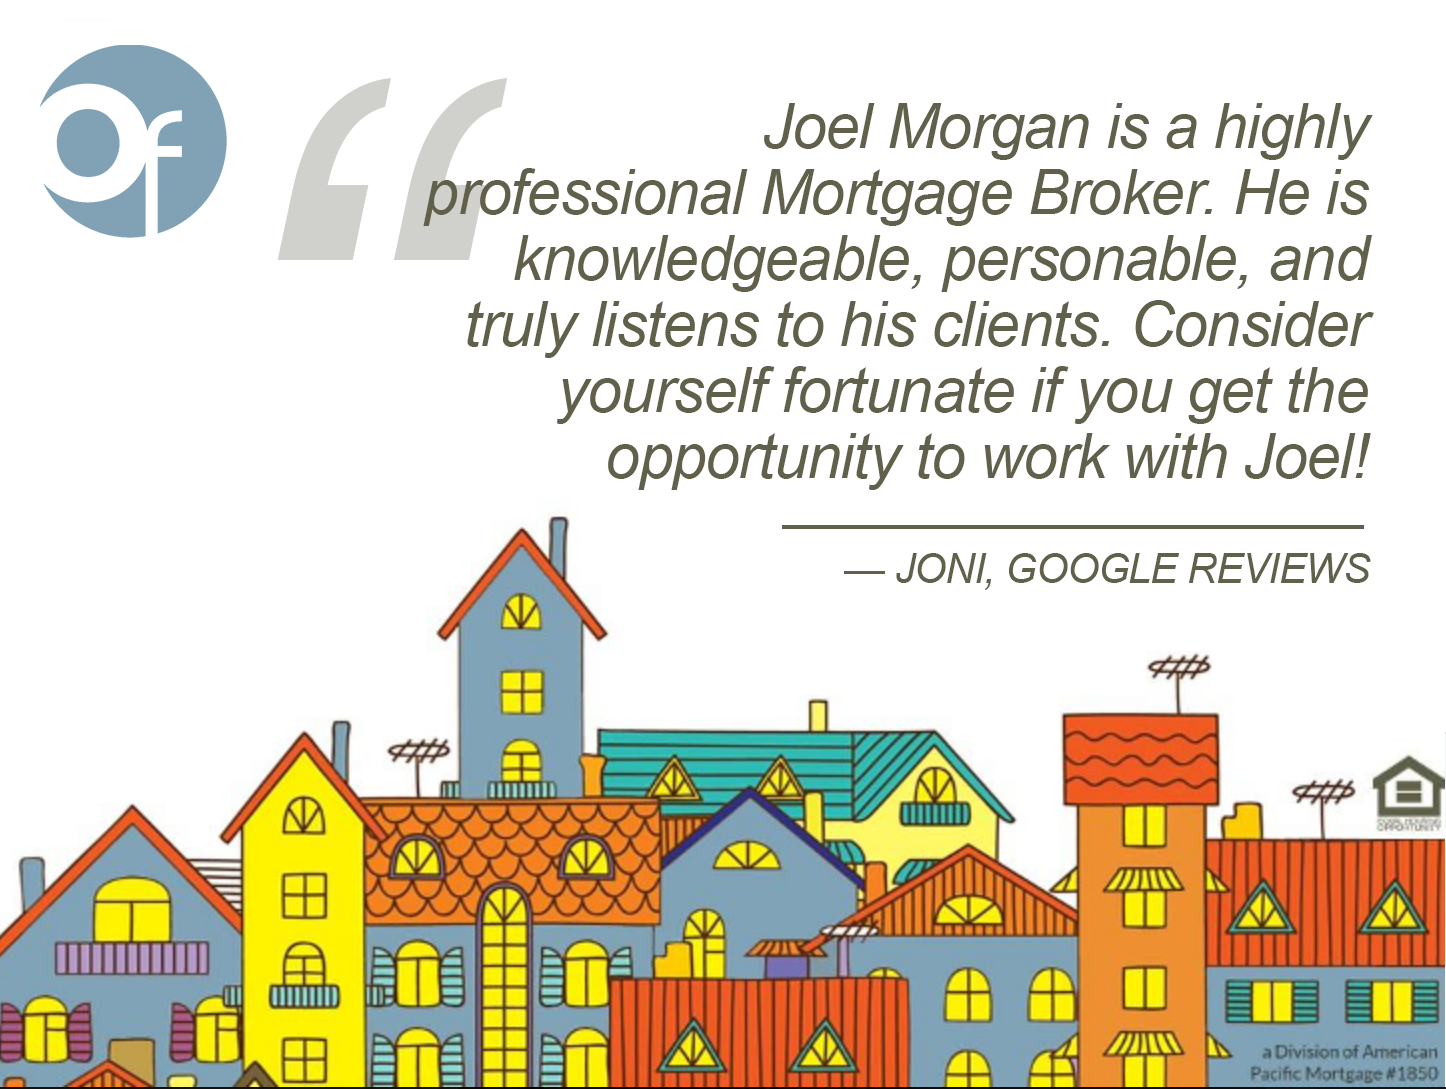 Joel Morgan is a highly professional Mortgage Broker. He is knowledgeable, personable, and truly listens to his clients. Consider yourself fortunate if you get the opportunity to work with Joel!